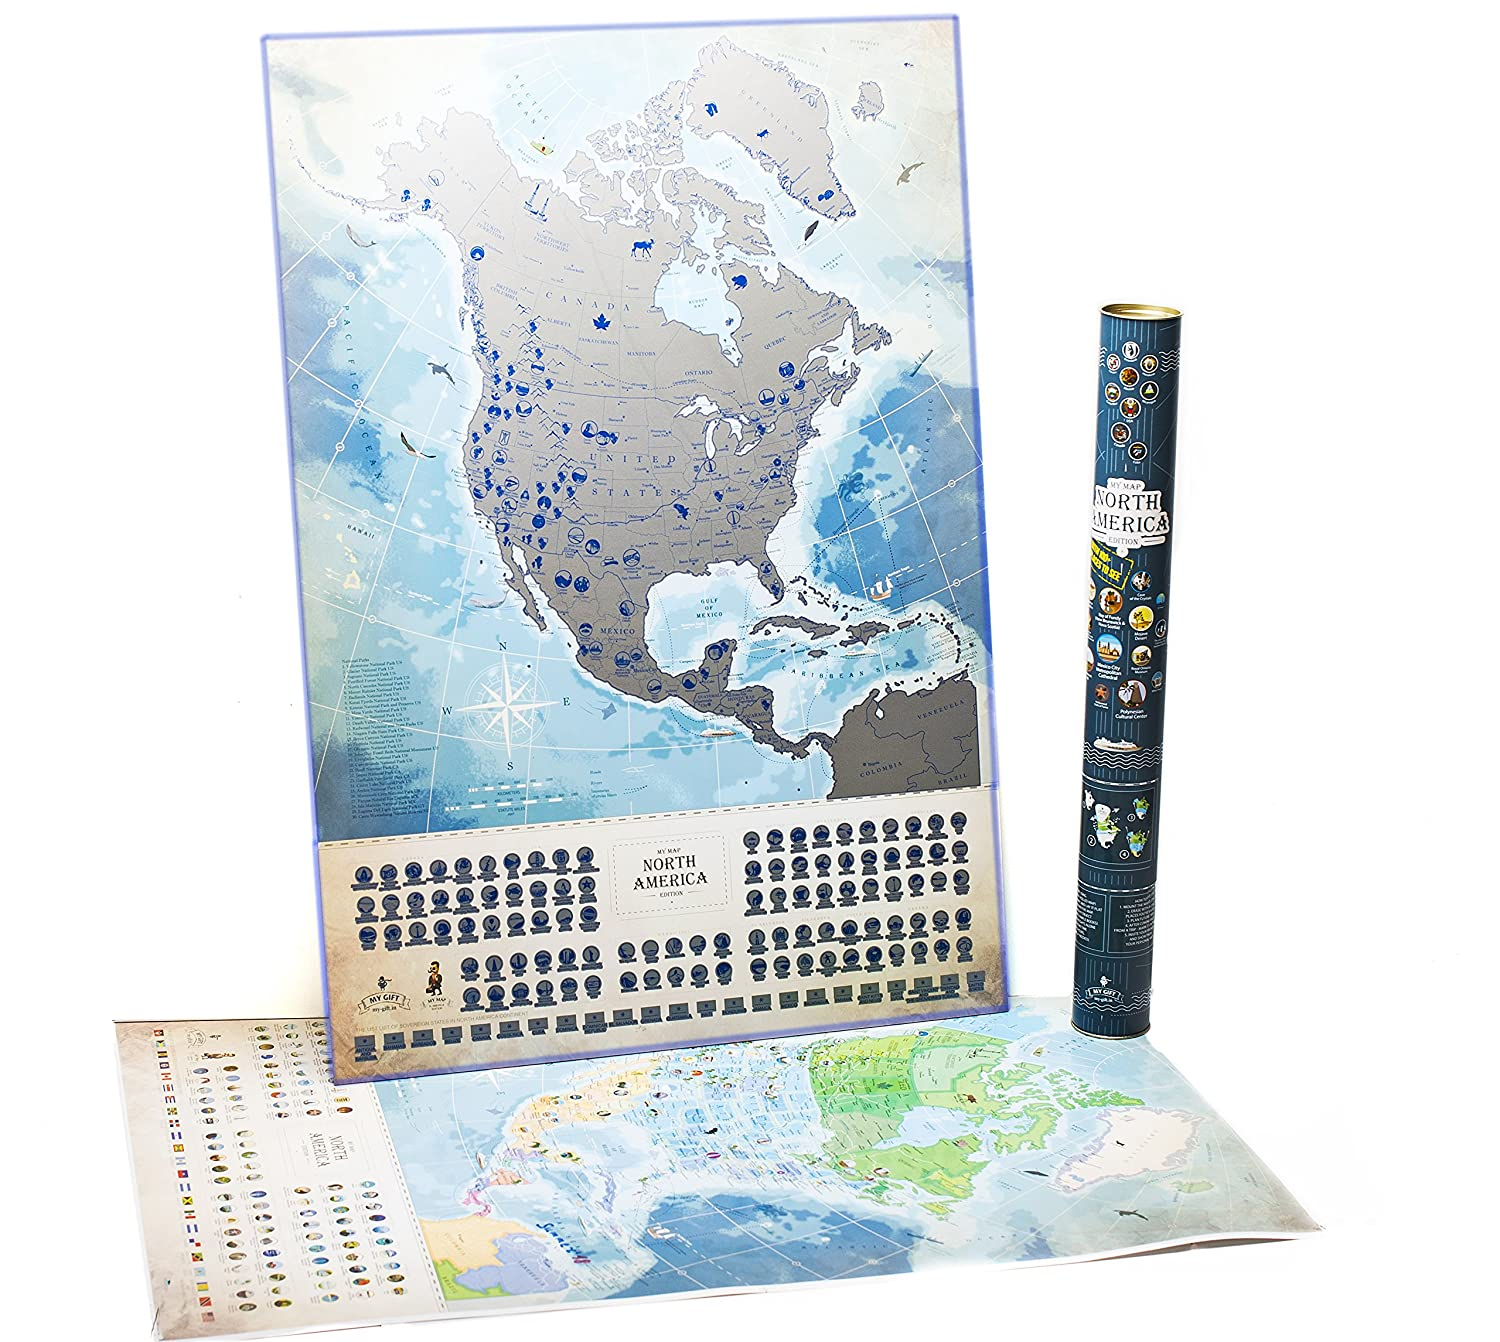 North America Scratch Off Map Luminous in the Dark with Challenges, w Canada map States, Flags and More than 100 Best Places and National Parks to Visit. Push Pin Travel Tracker Map MyMap